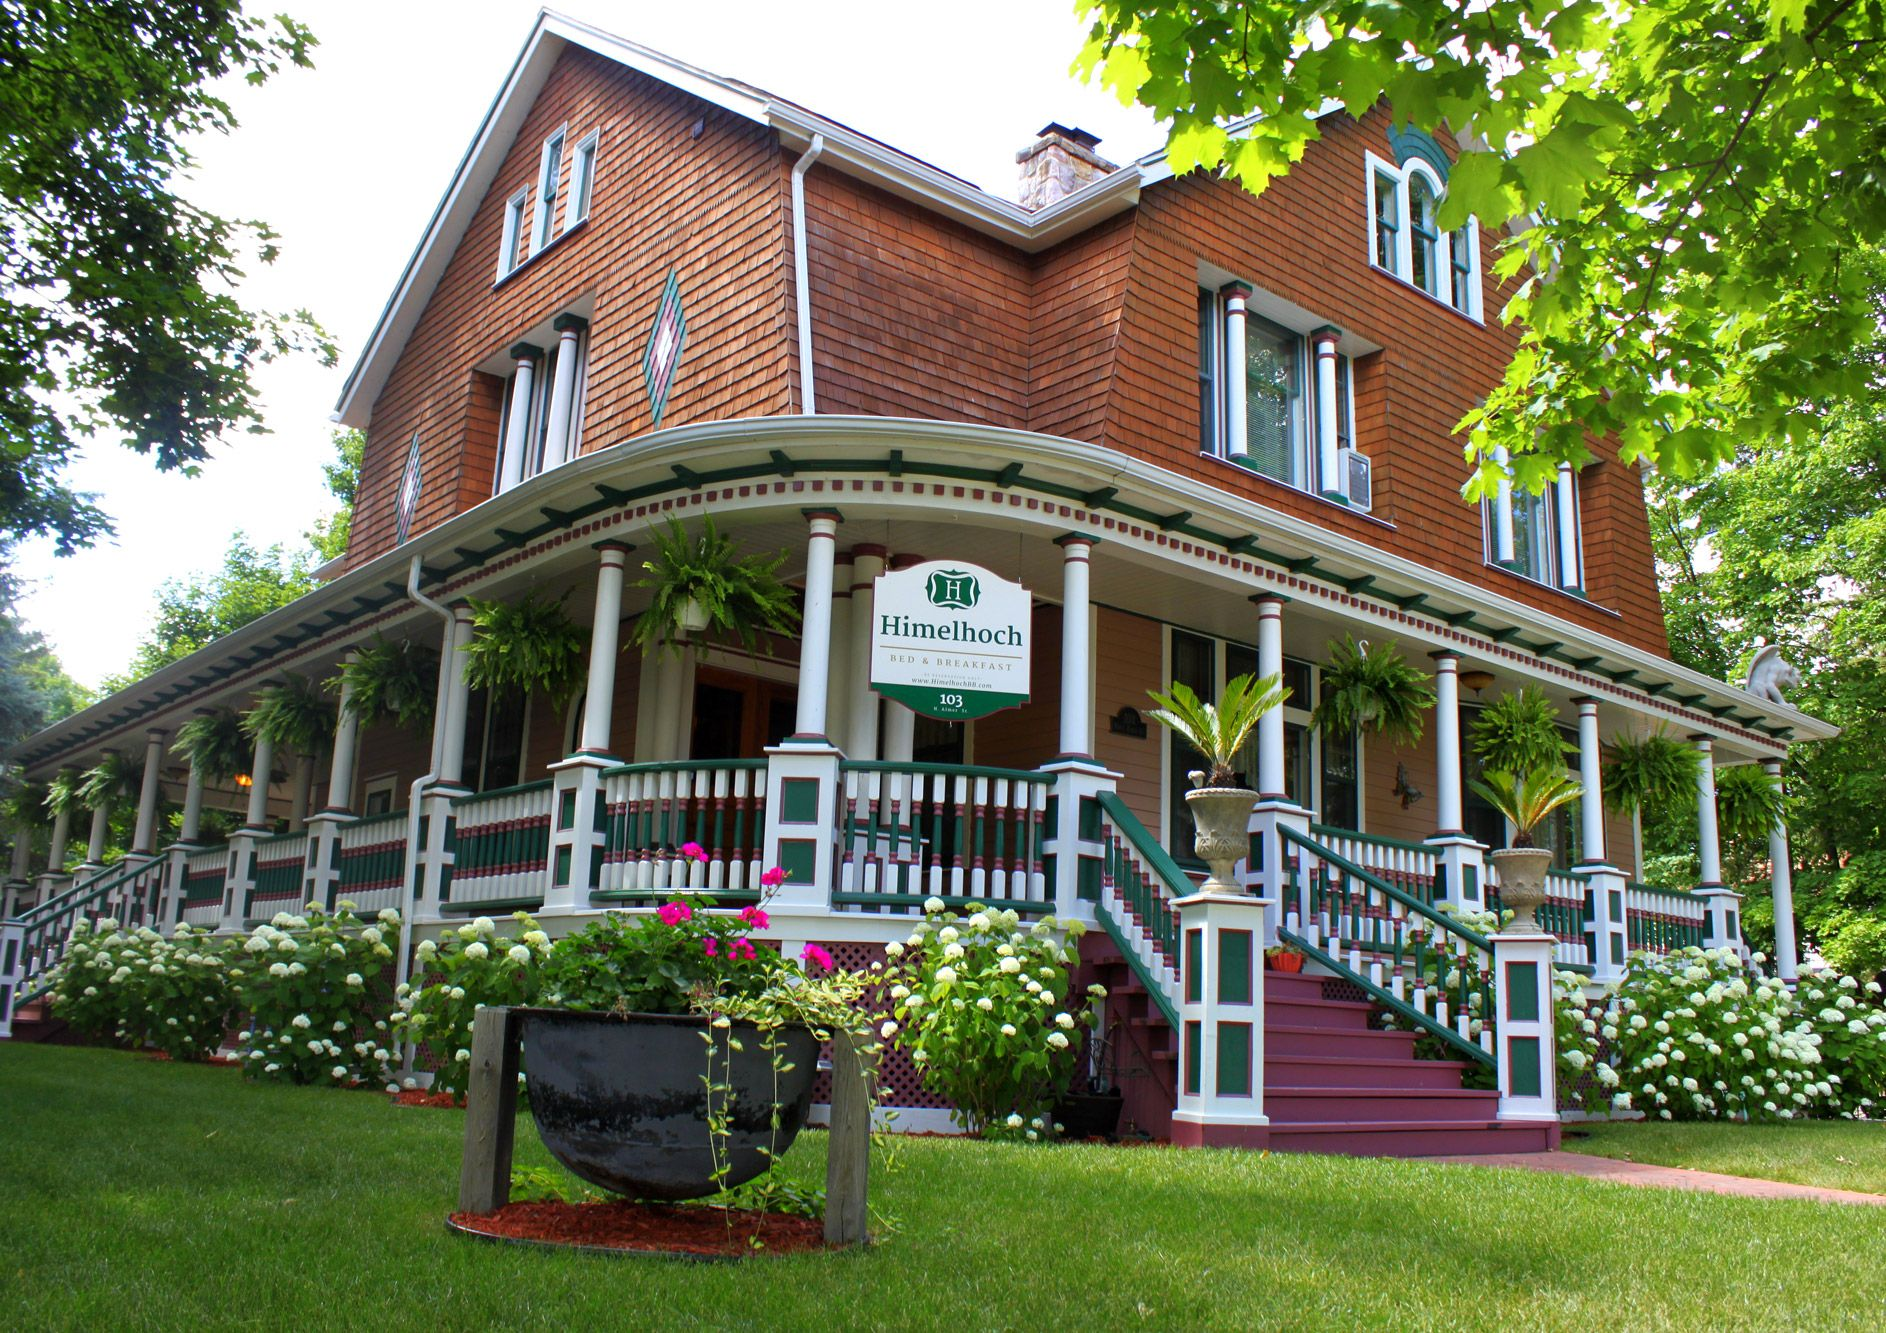 Pin by Himelhoch Bed & Breakfast on Exterior & Grounds